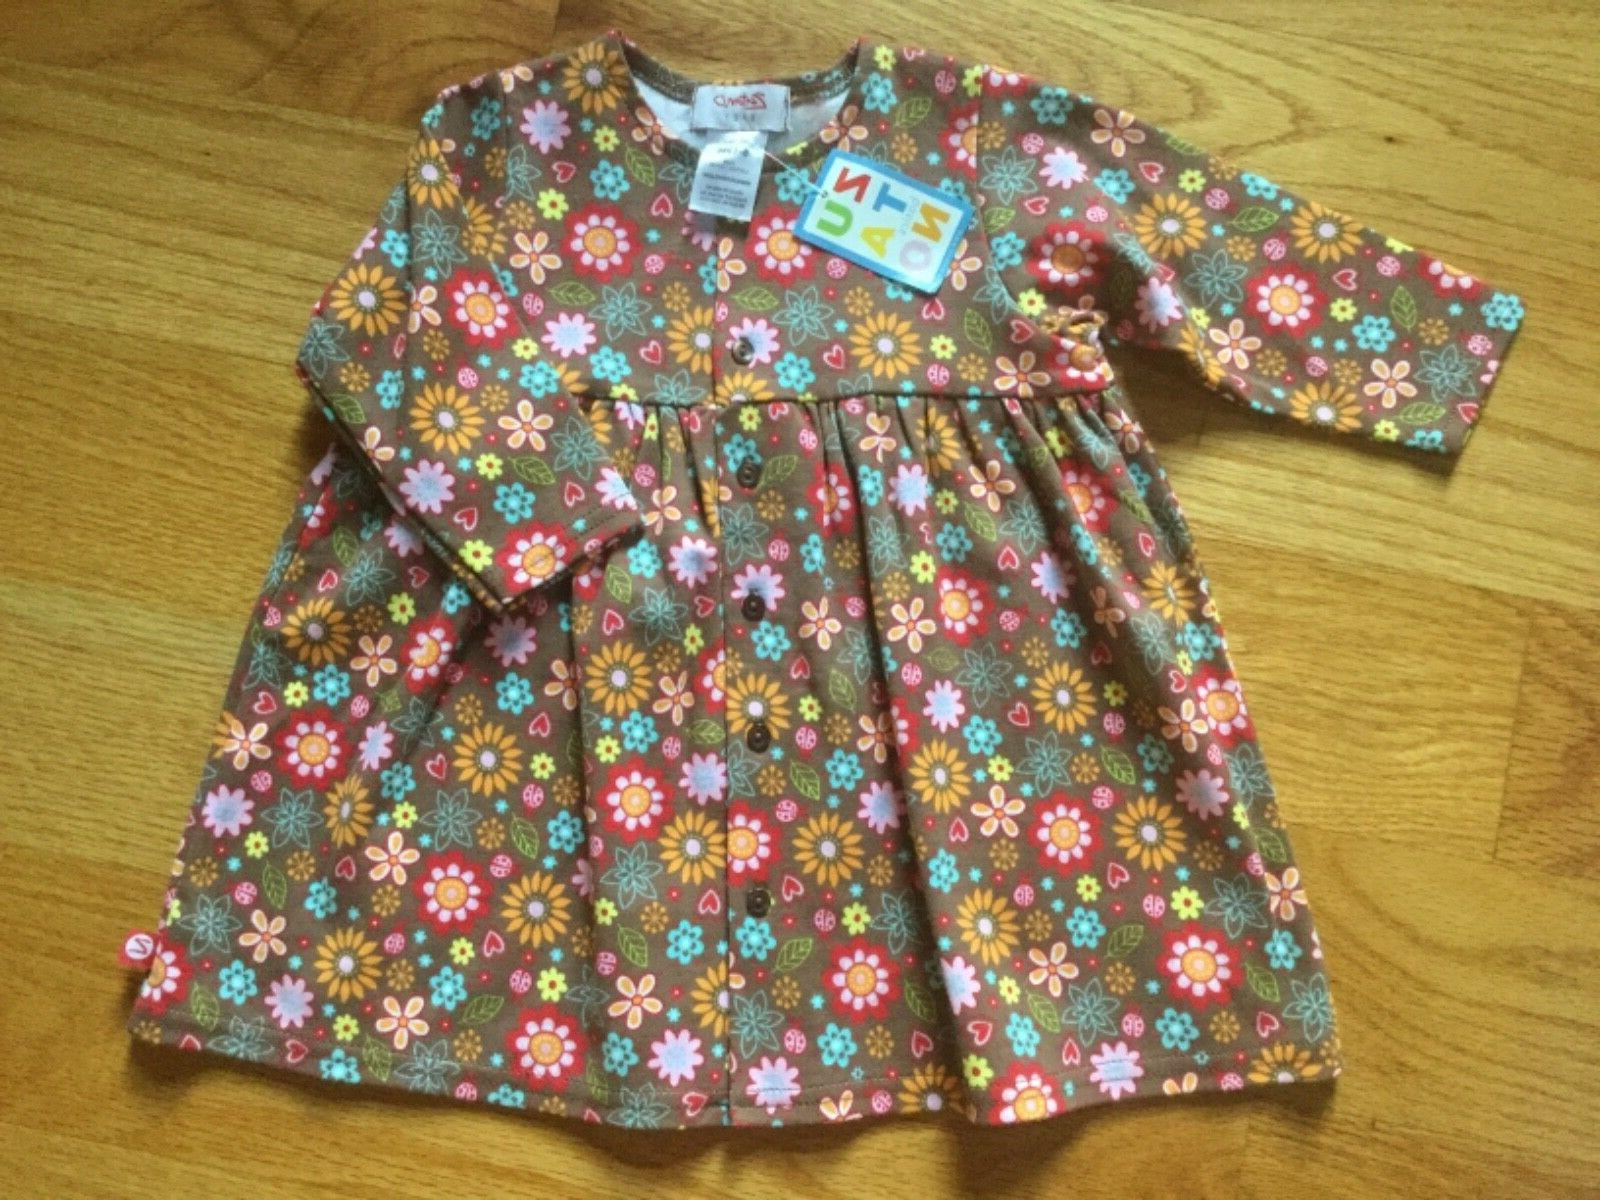 New Zutano intant dress size 6-12 months